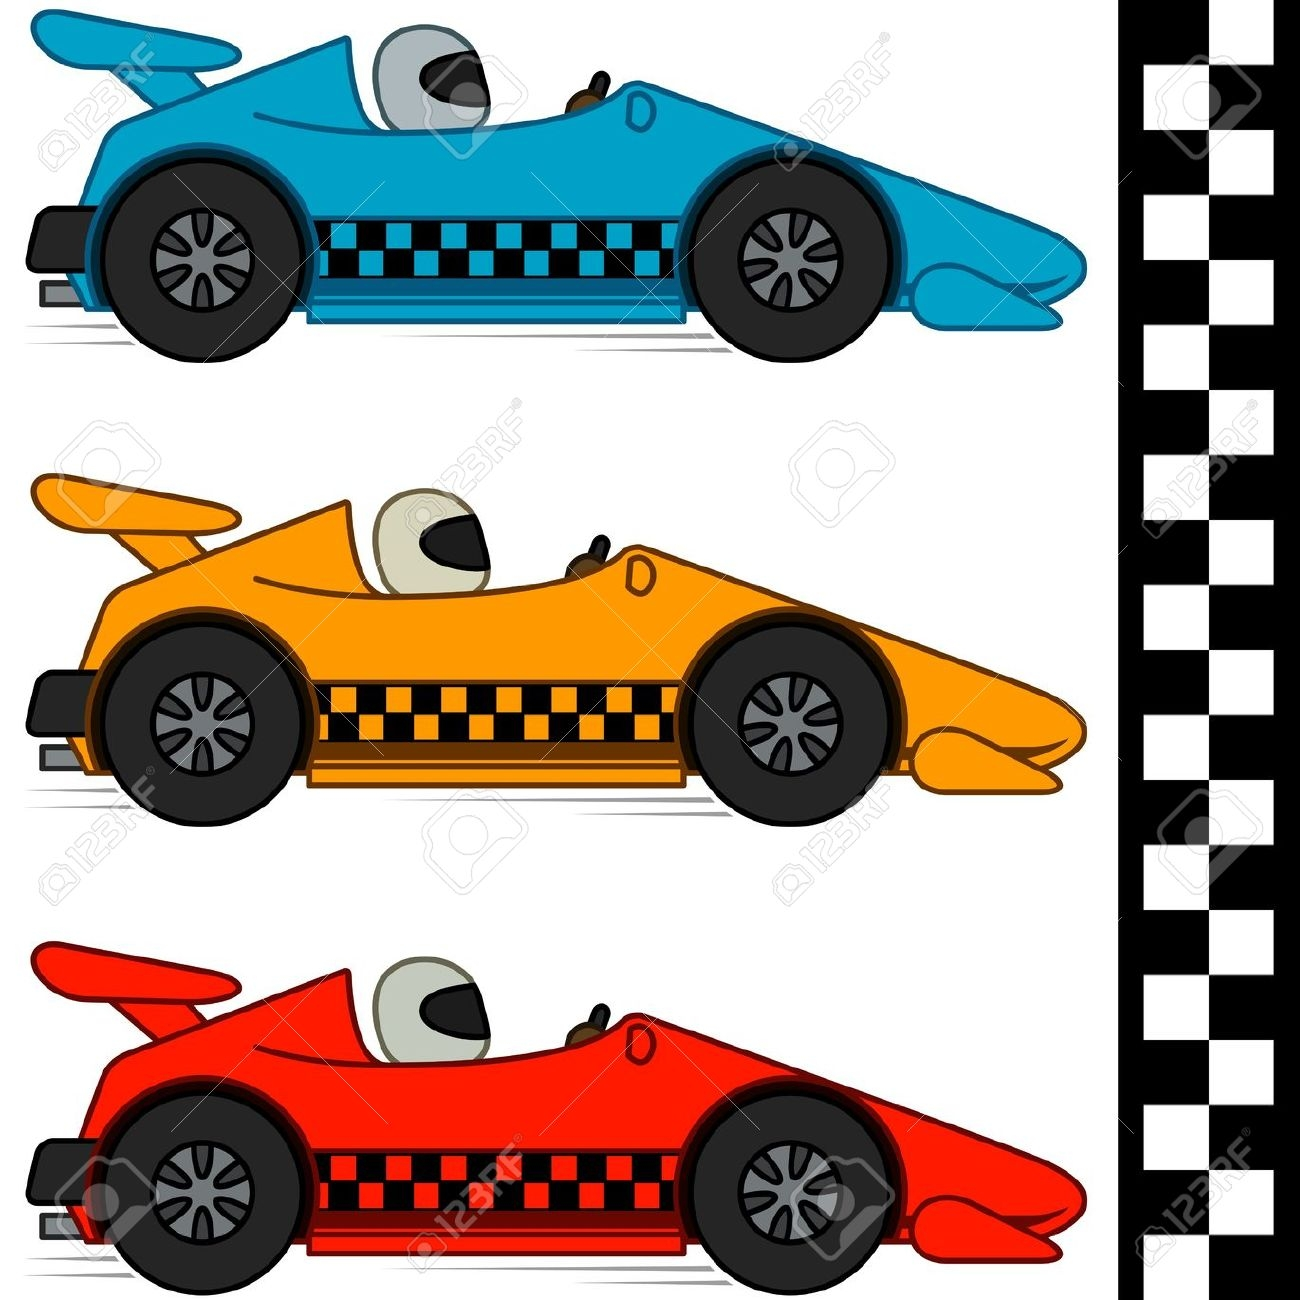 1300x1300 Race Car Images Clip Art Racing Cartoon Race Car Clipart Clip Art